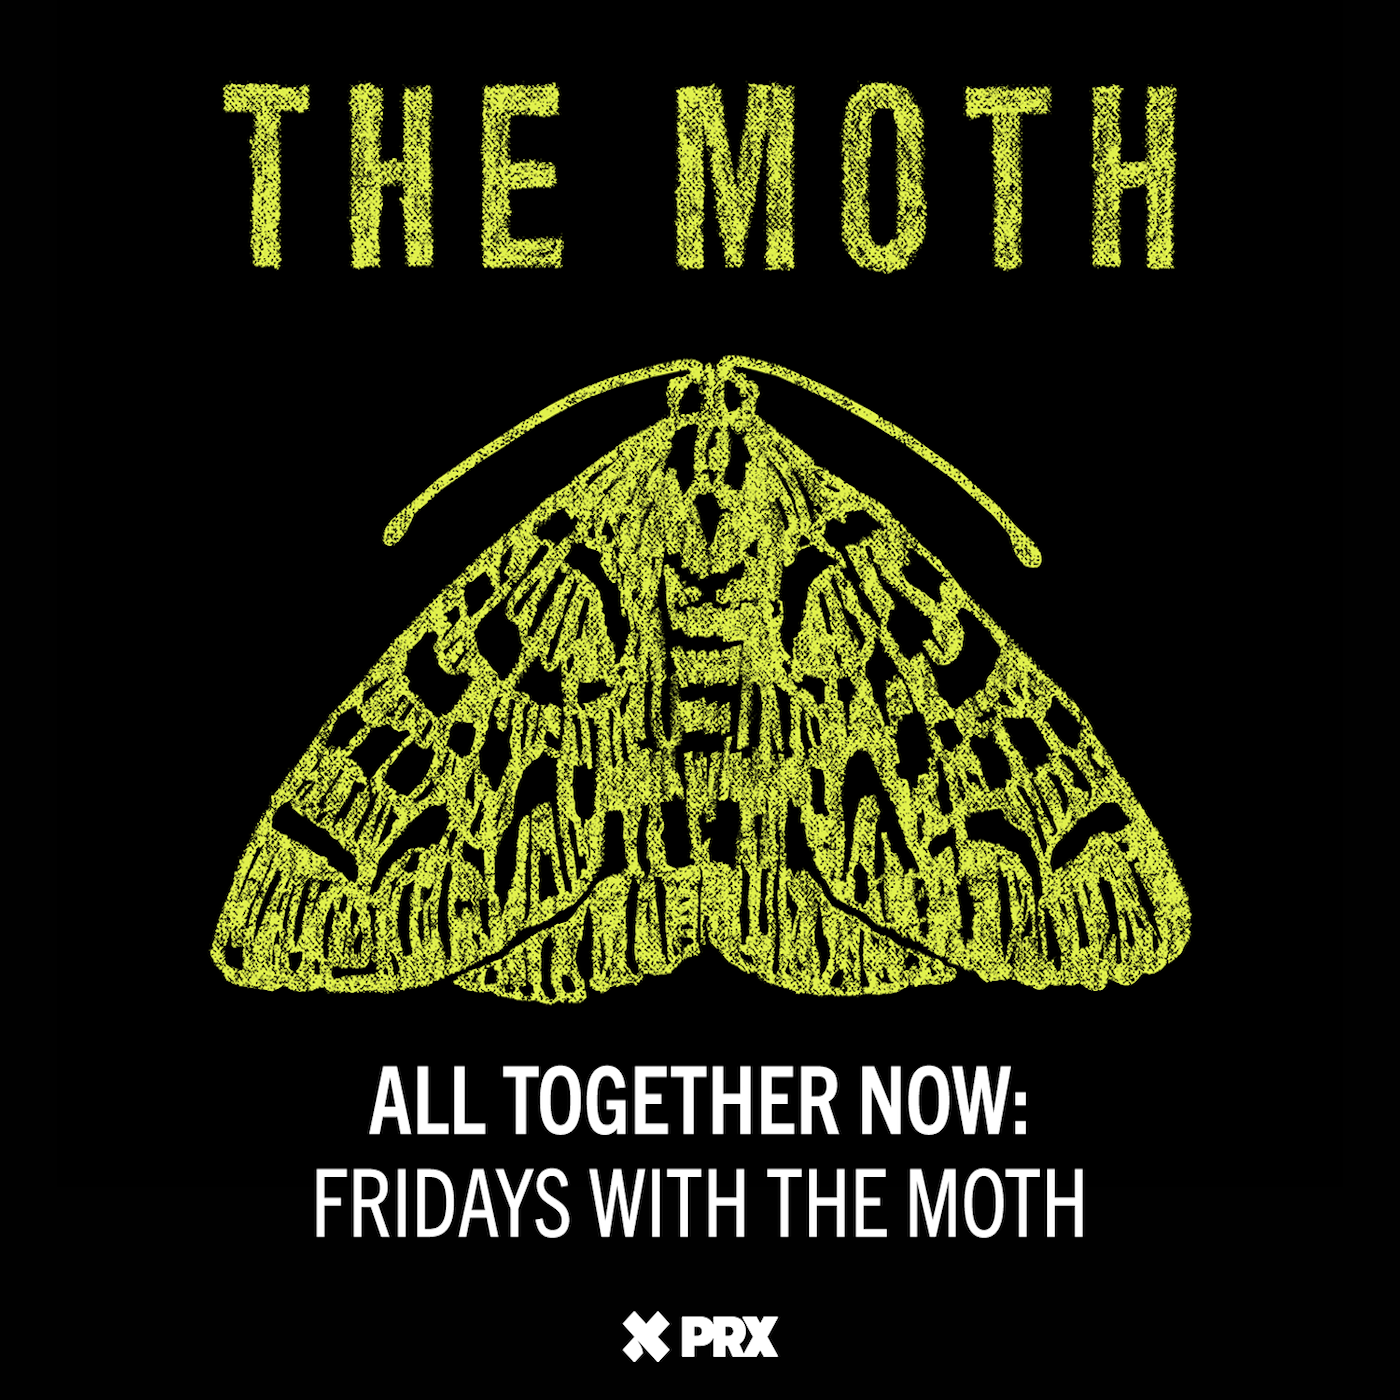 All Together Now: Fridays with The Moth - Isaiah Owens